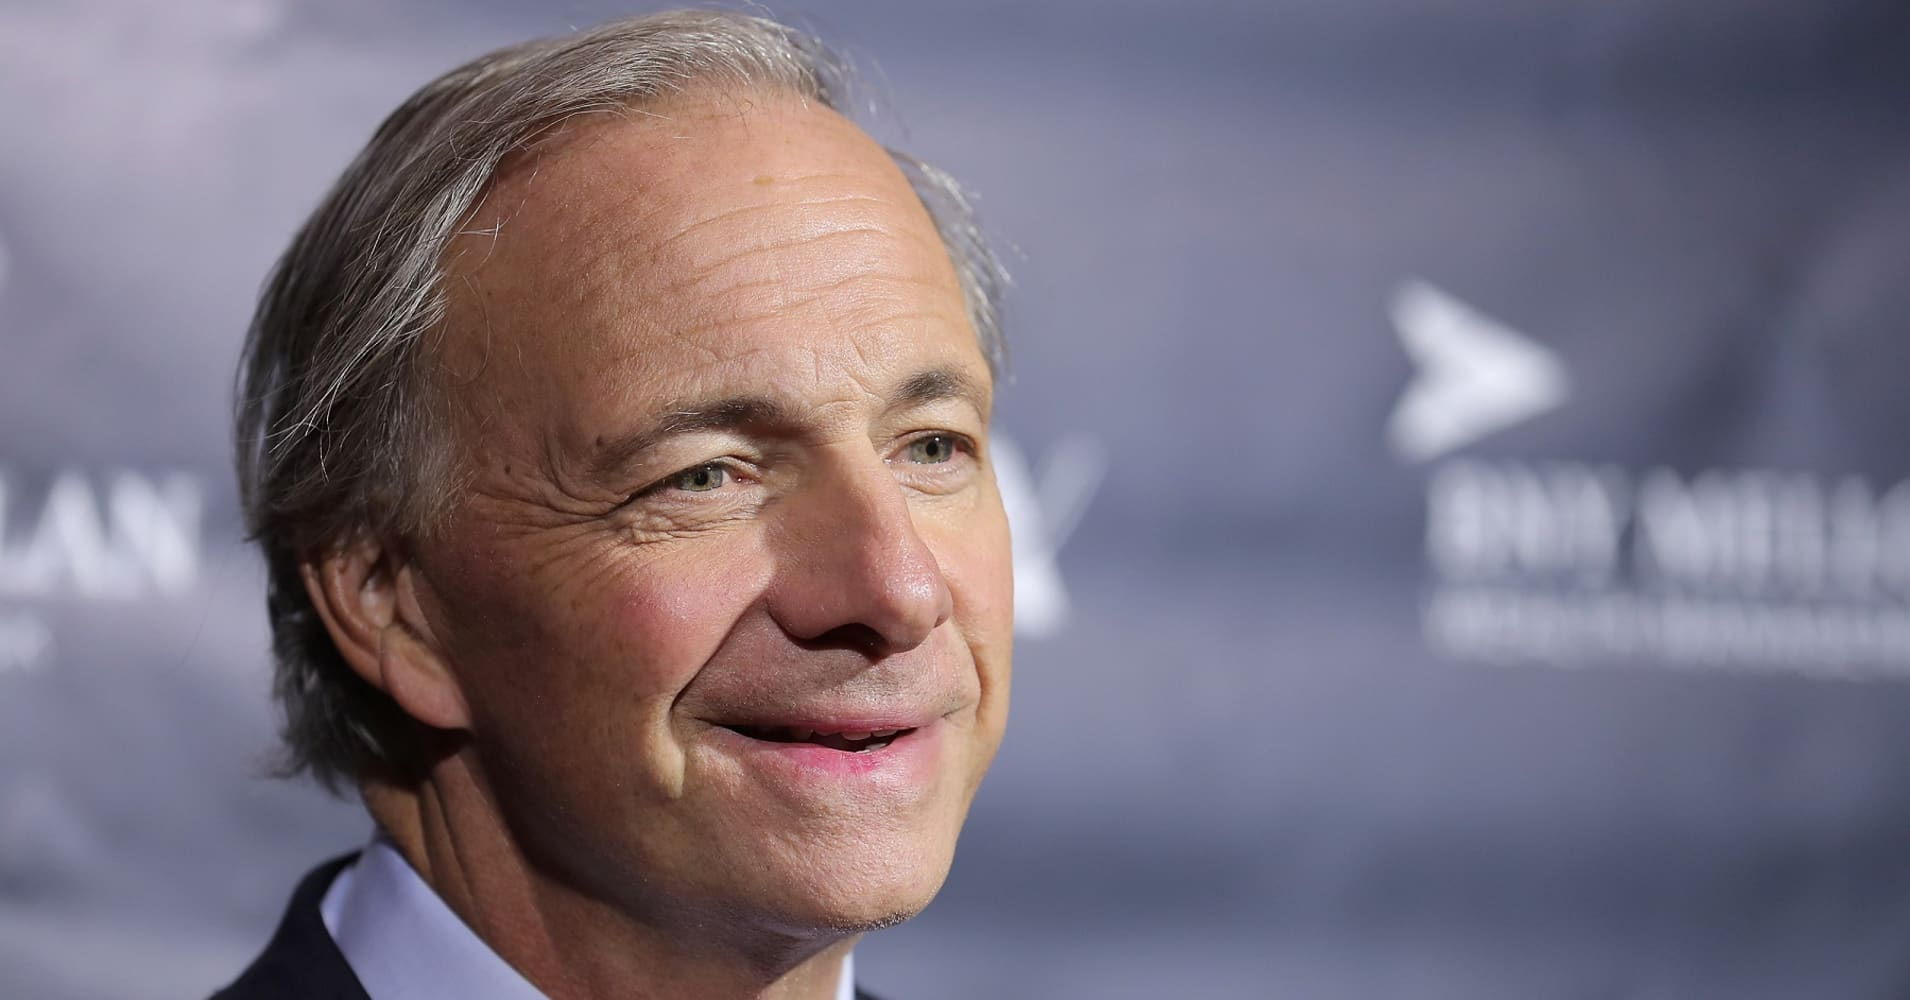 Billionaire Ray Dalio shares a simple 5-step formula for new graduates (or anyone) to succeed